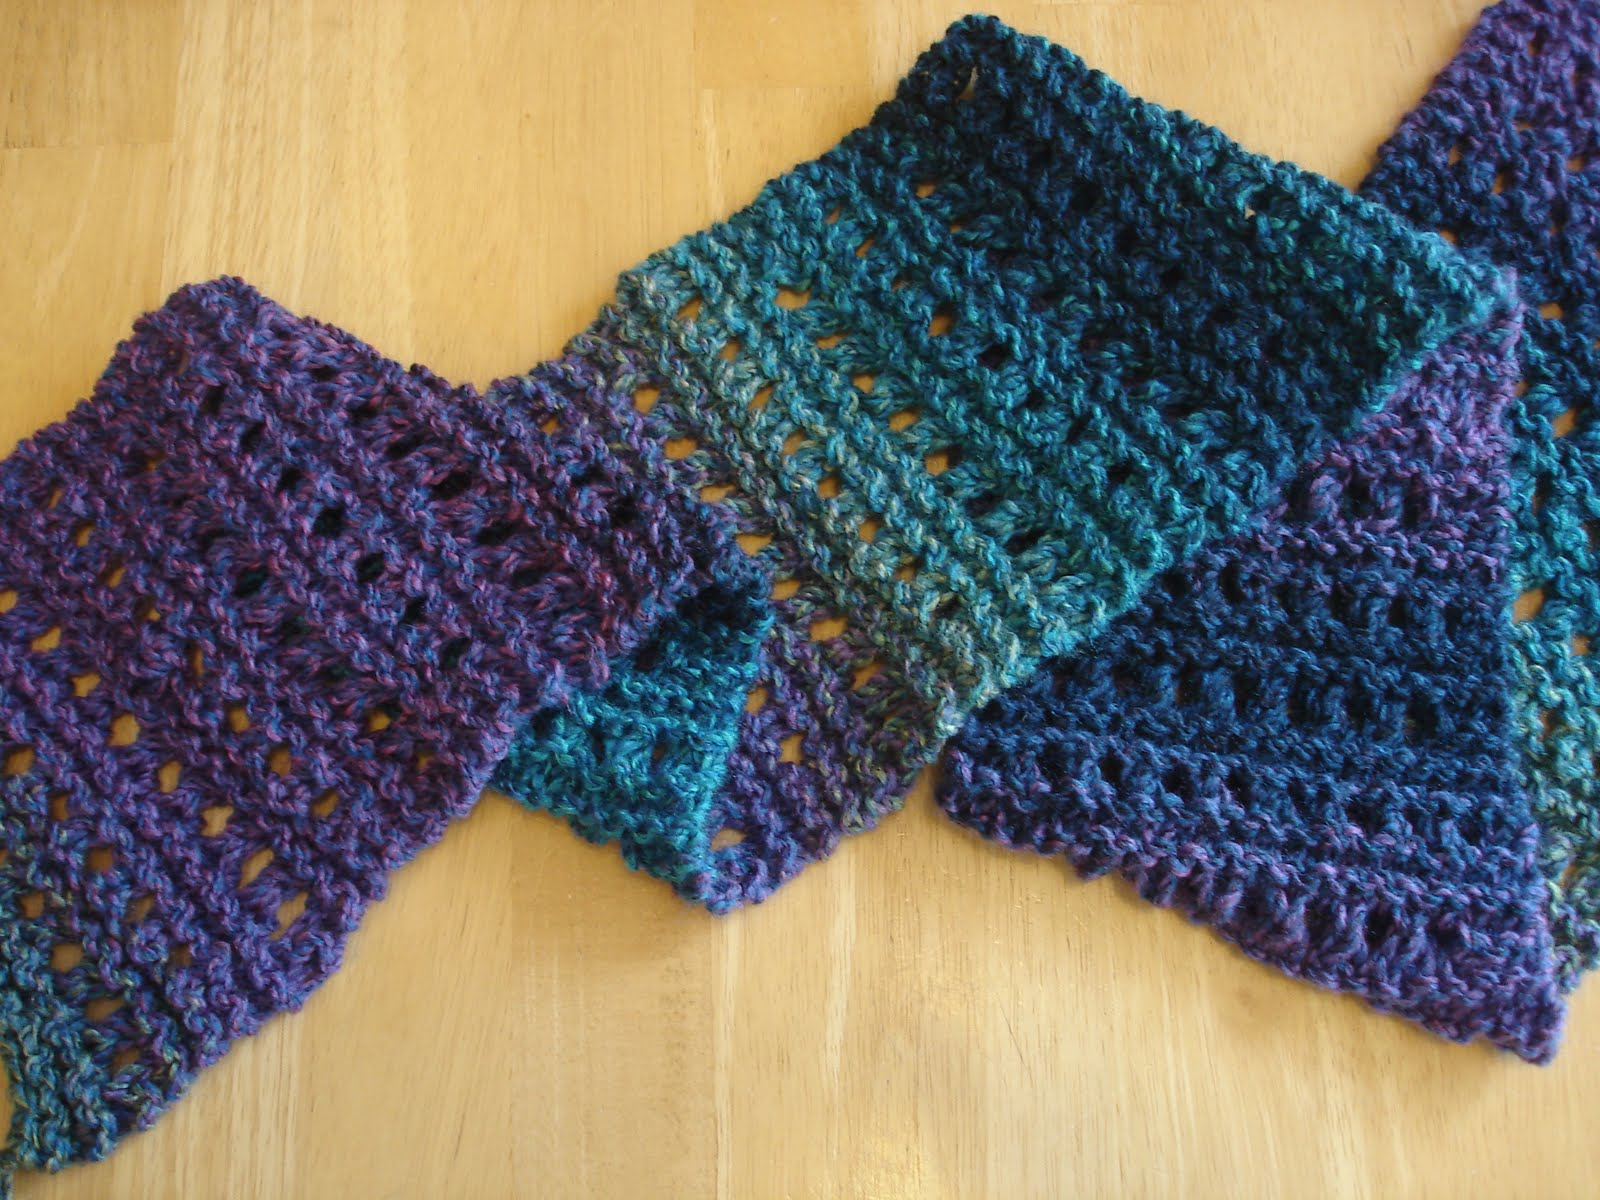 Knitting Pattern For Basic Scarf : Fiber Flux: Free Knitting Pattern: Tweedy Eyelet Scarf!